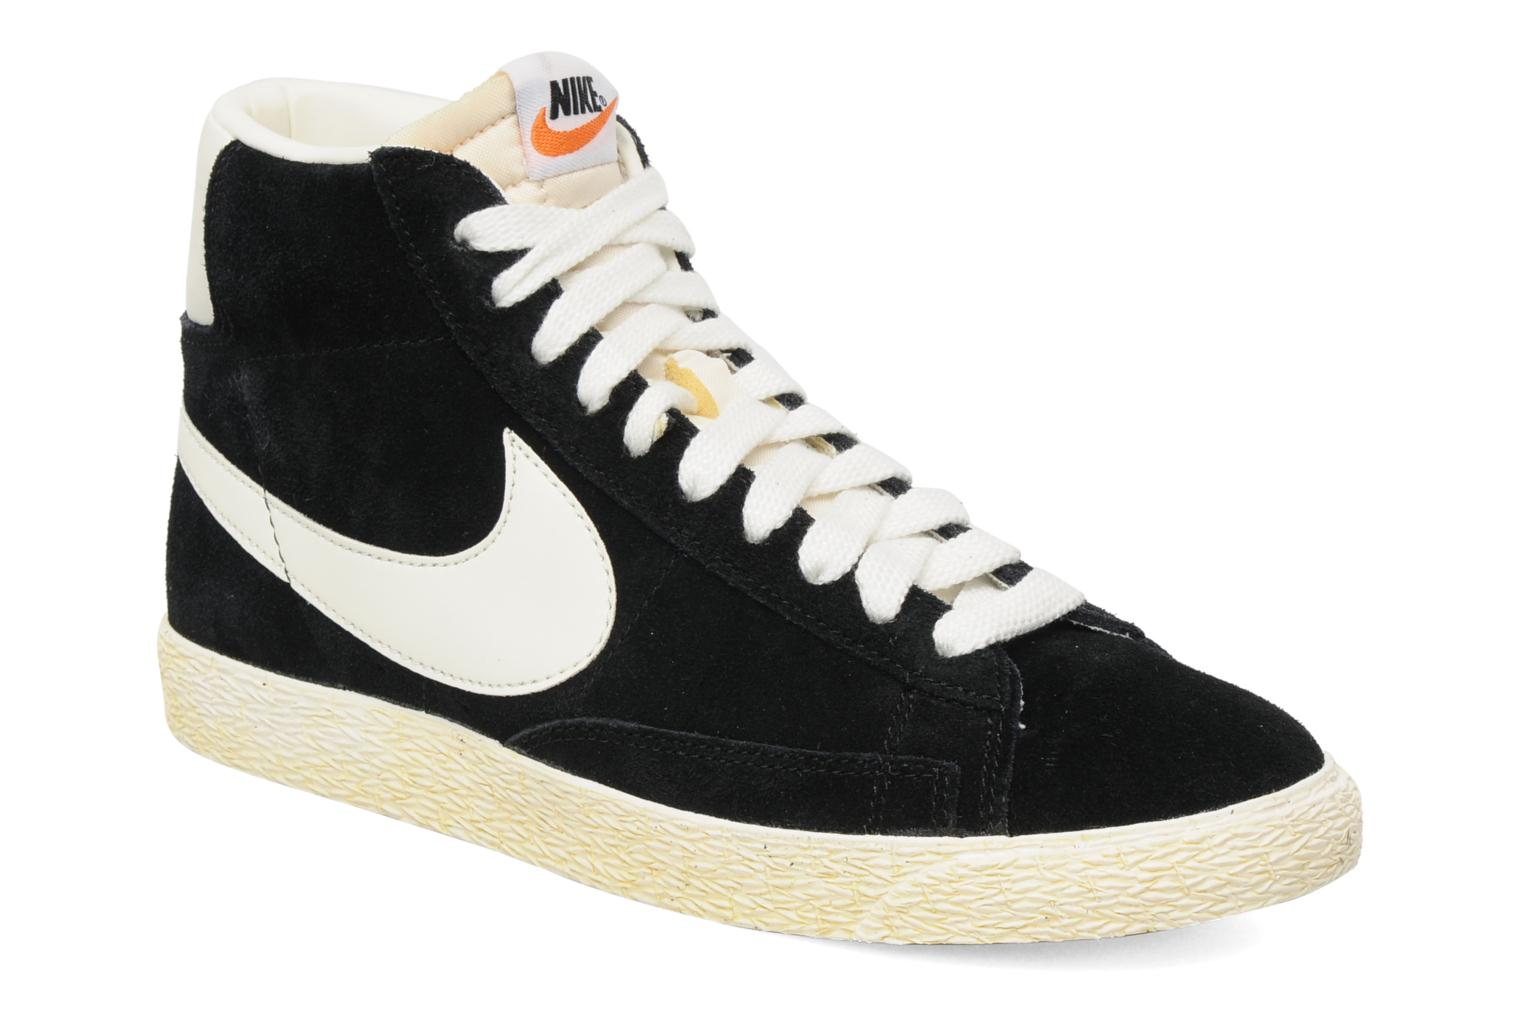 roshe run on sale - nike-blazer-vintage-1-lecatalog.com.jpg